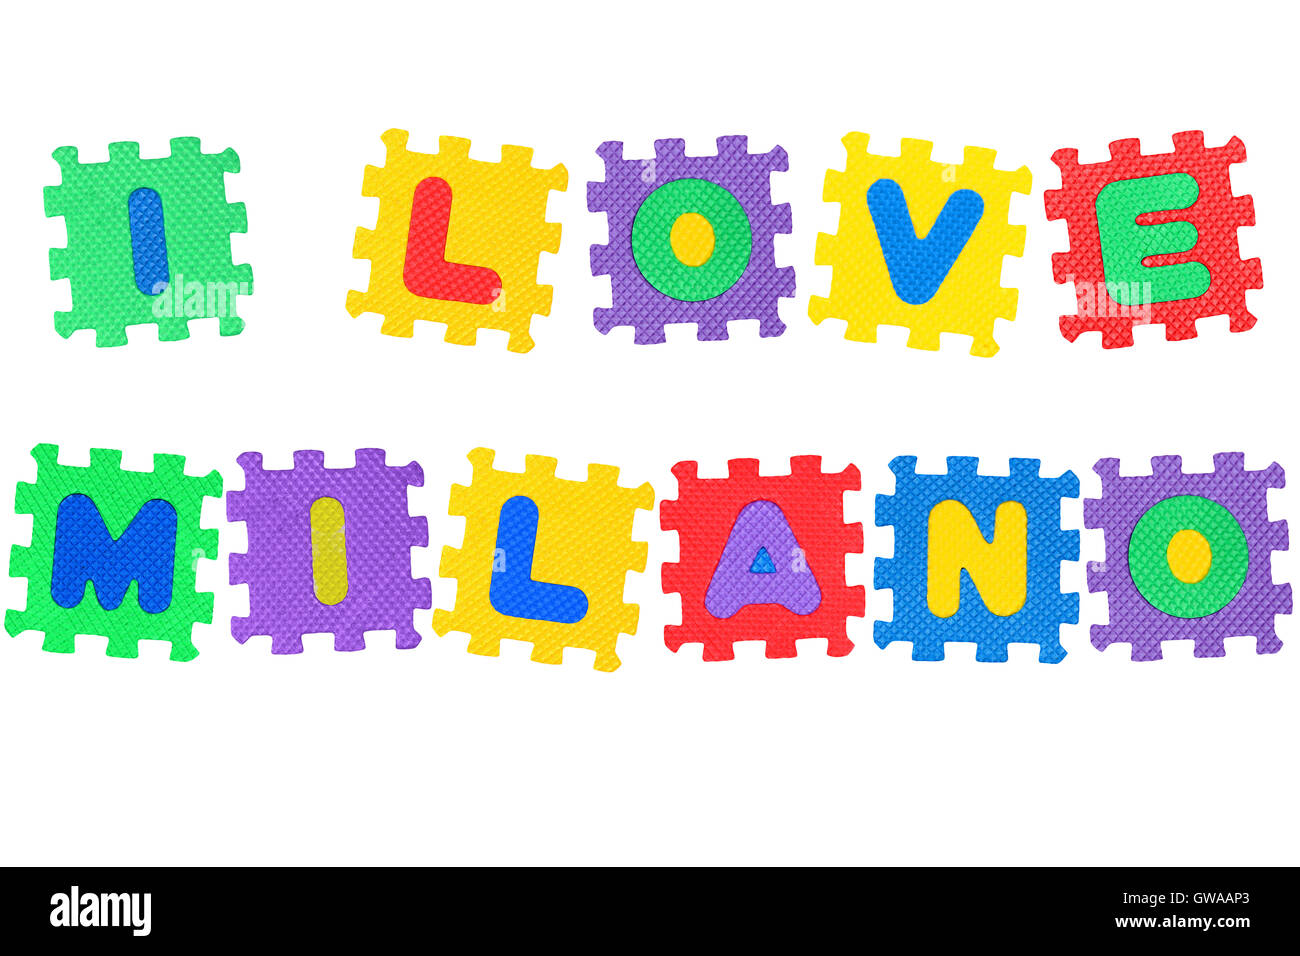 Message I Love Milano, from letters puzzle, isolated on white background. - Stock Image